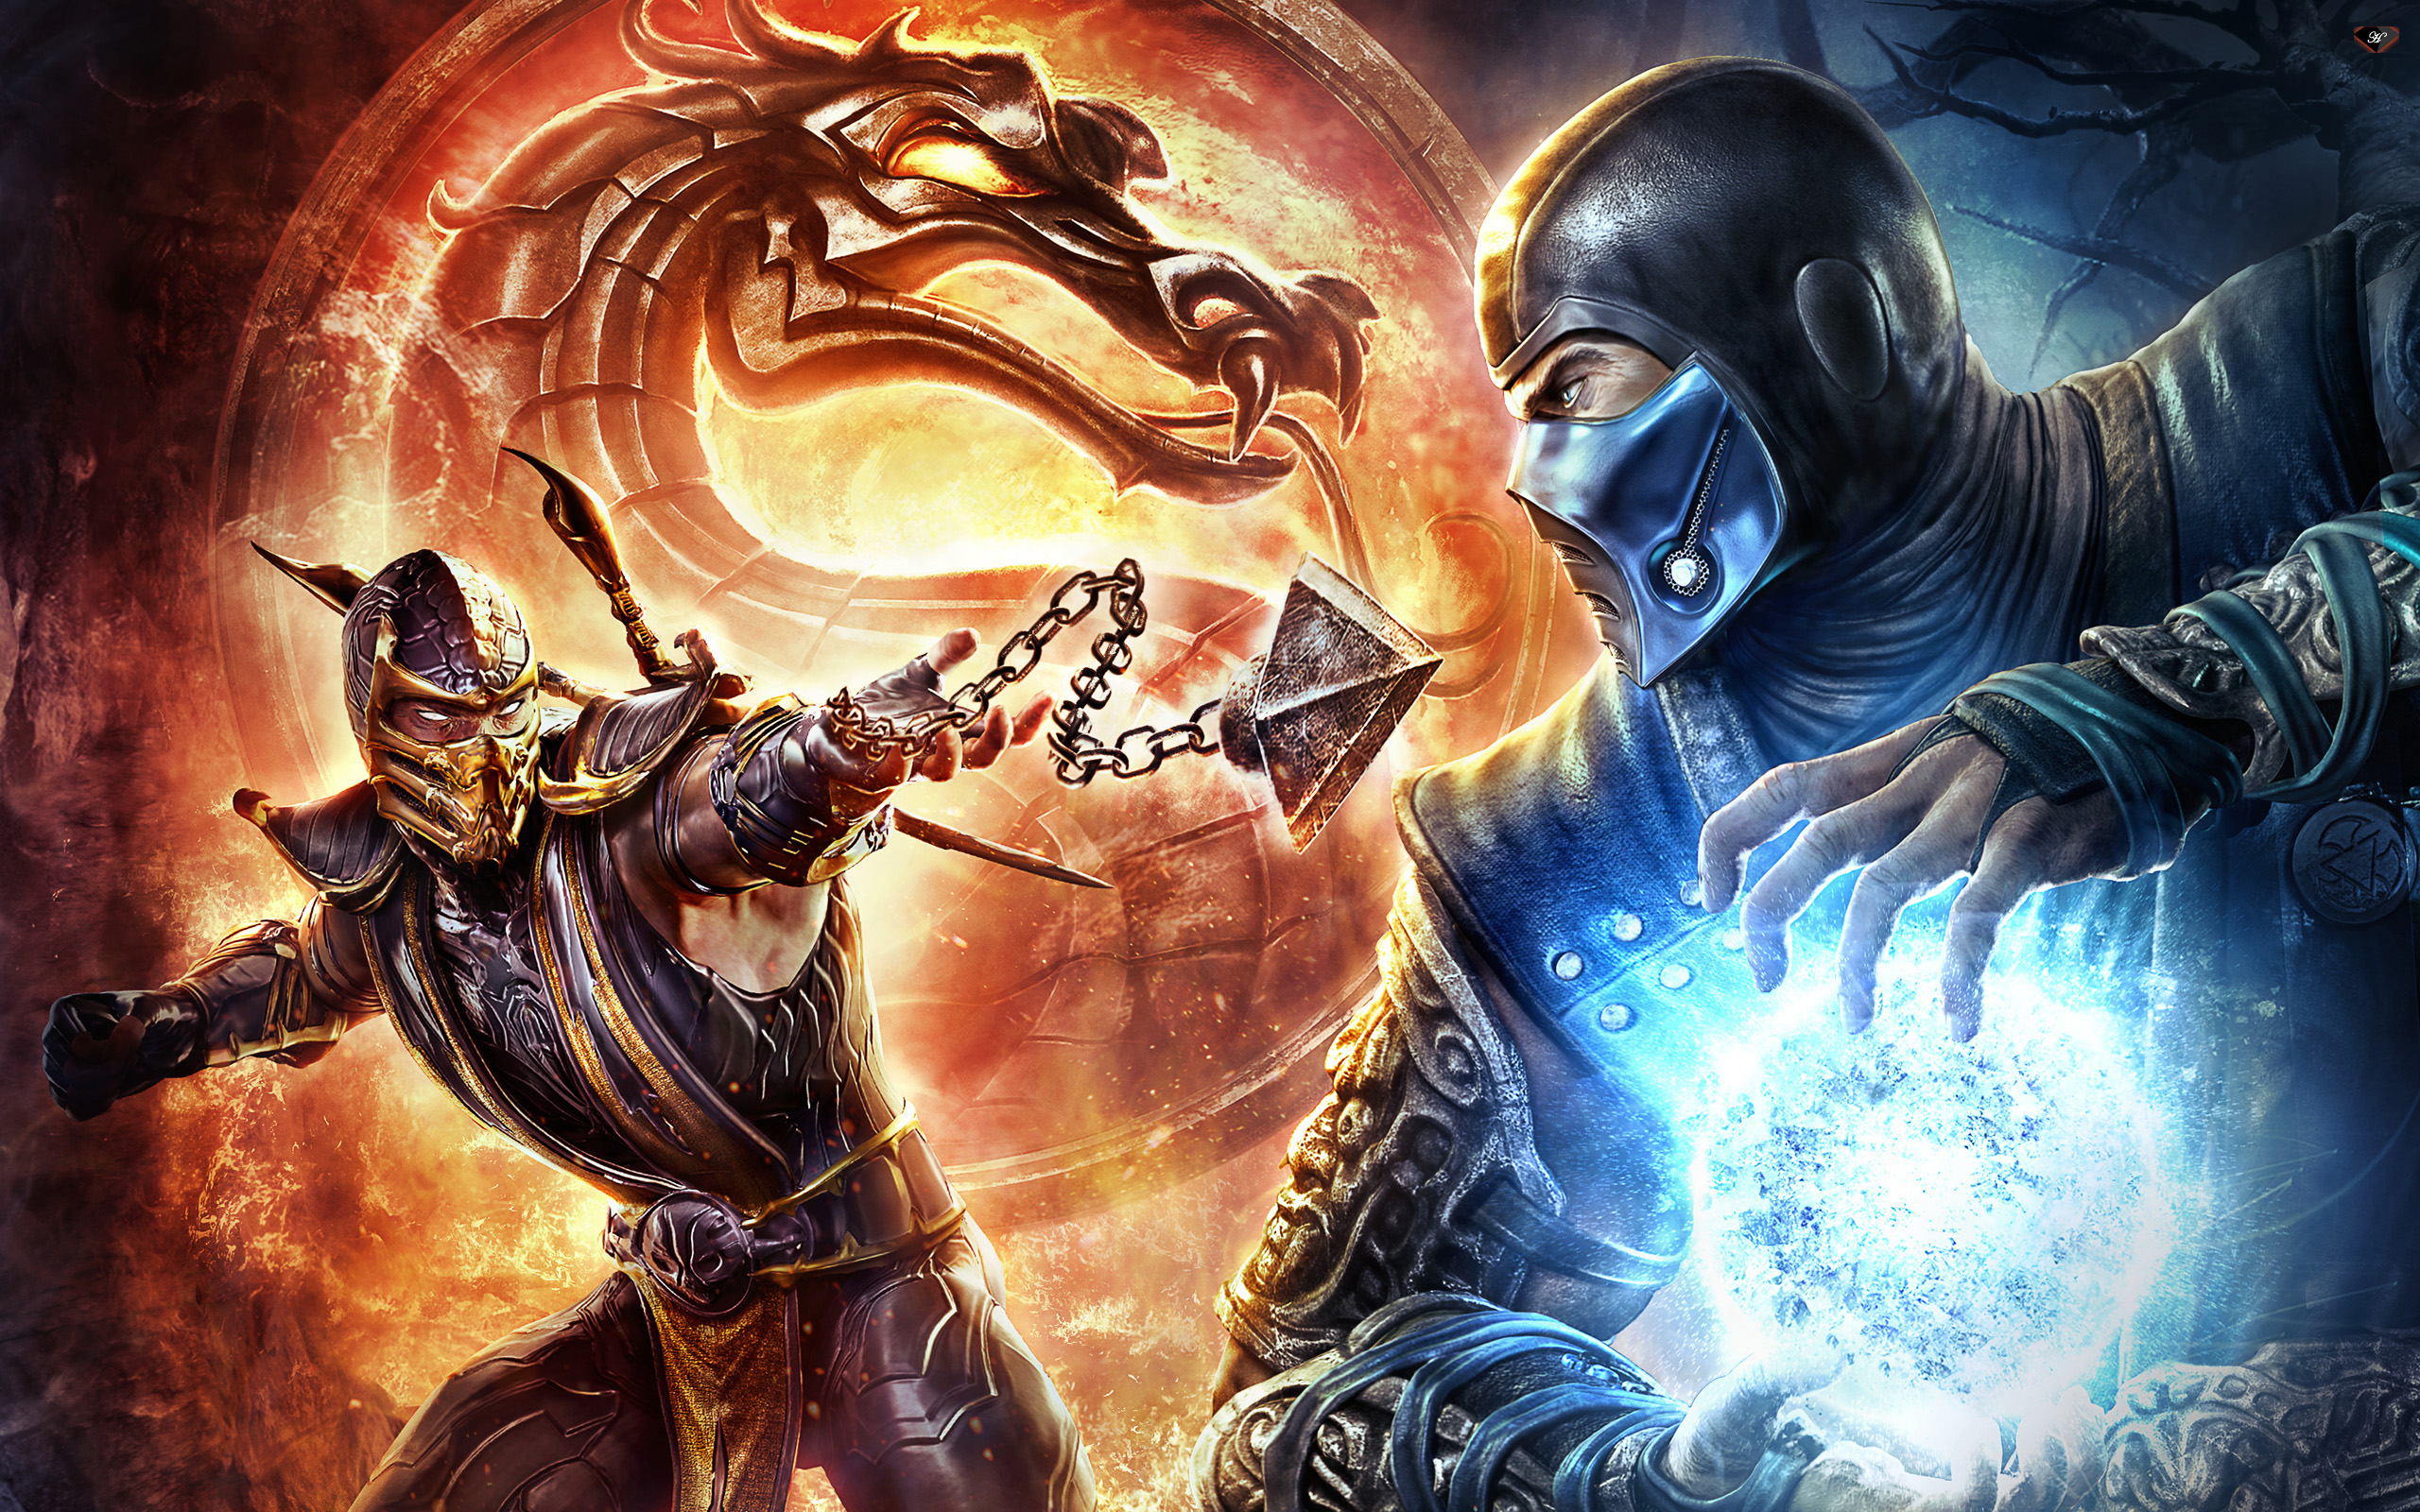 Mortal Kombat HD Wallpapers Background Images Wallpaper